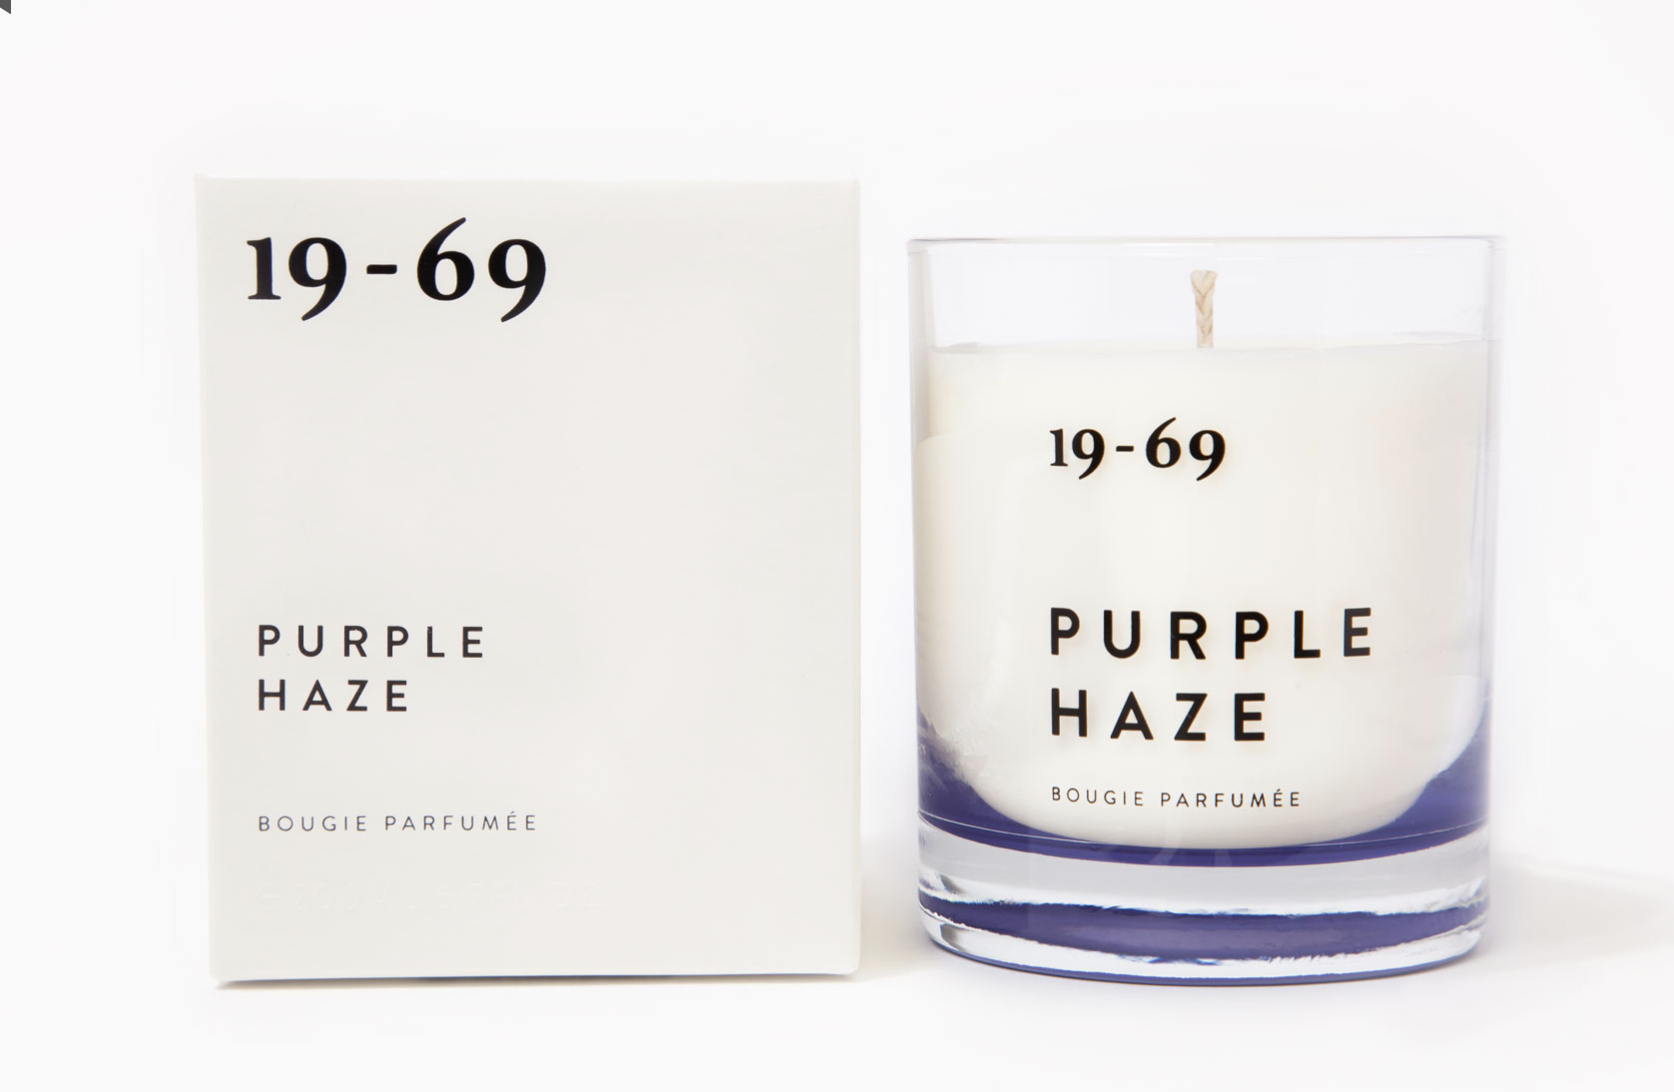 1969 - Purple Haze 200ml Candle